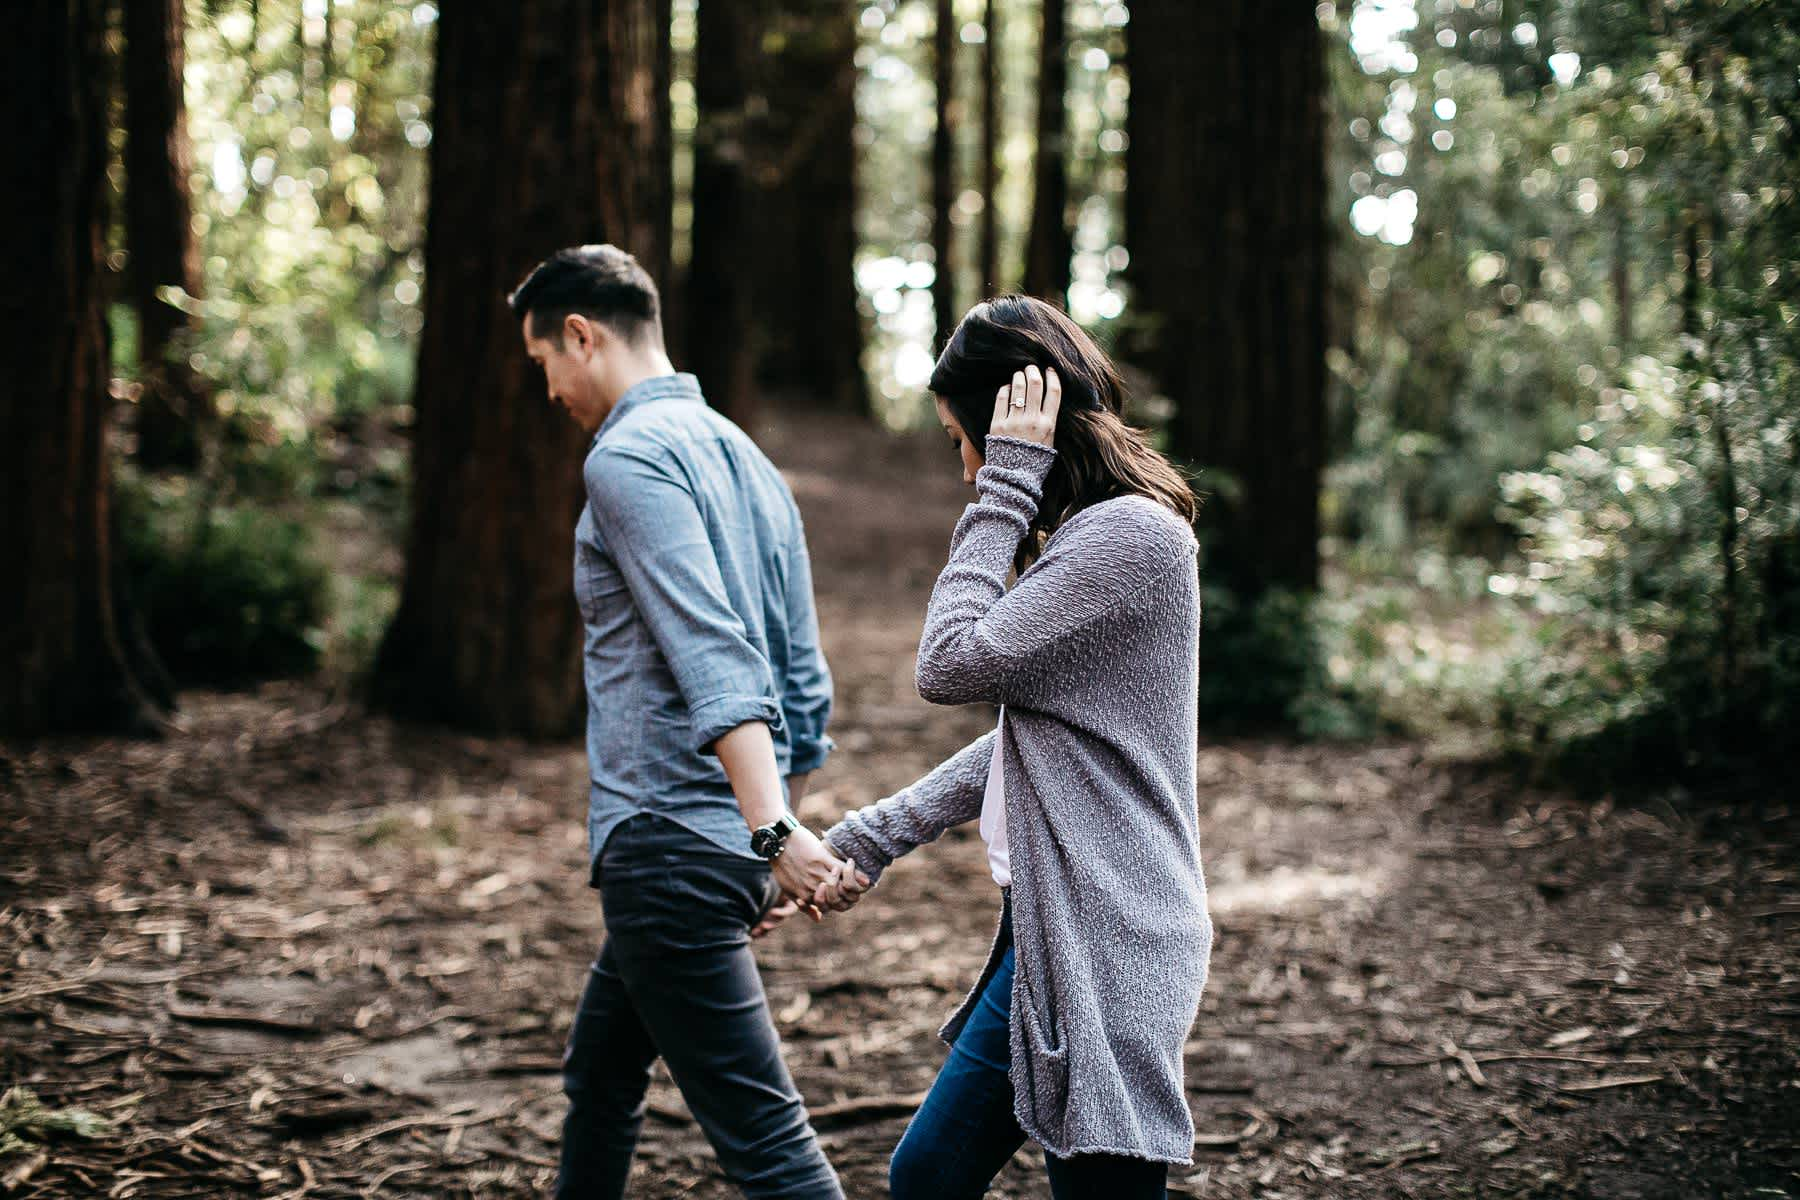 oakland-california-lifestyle-engagment-session-redwood-hills-16